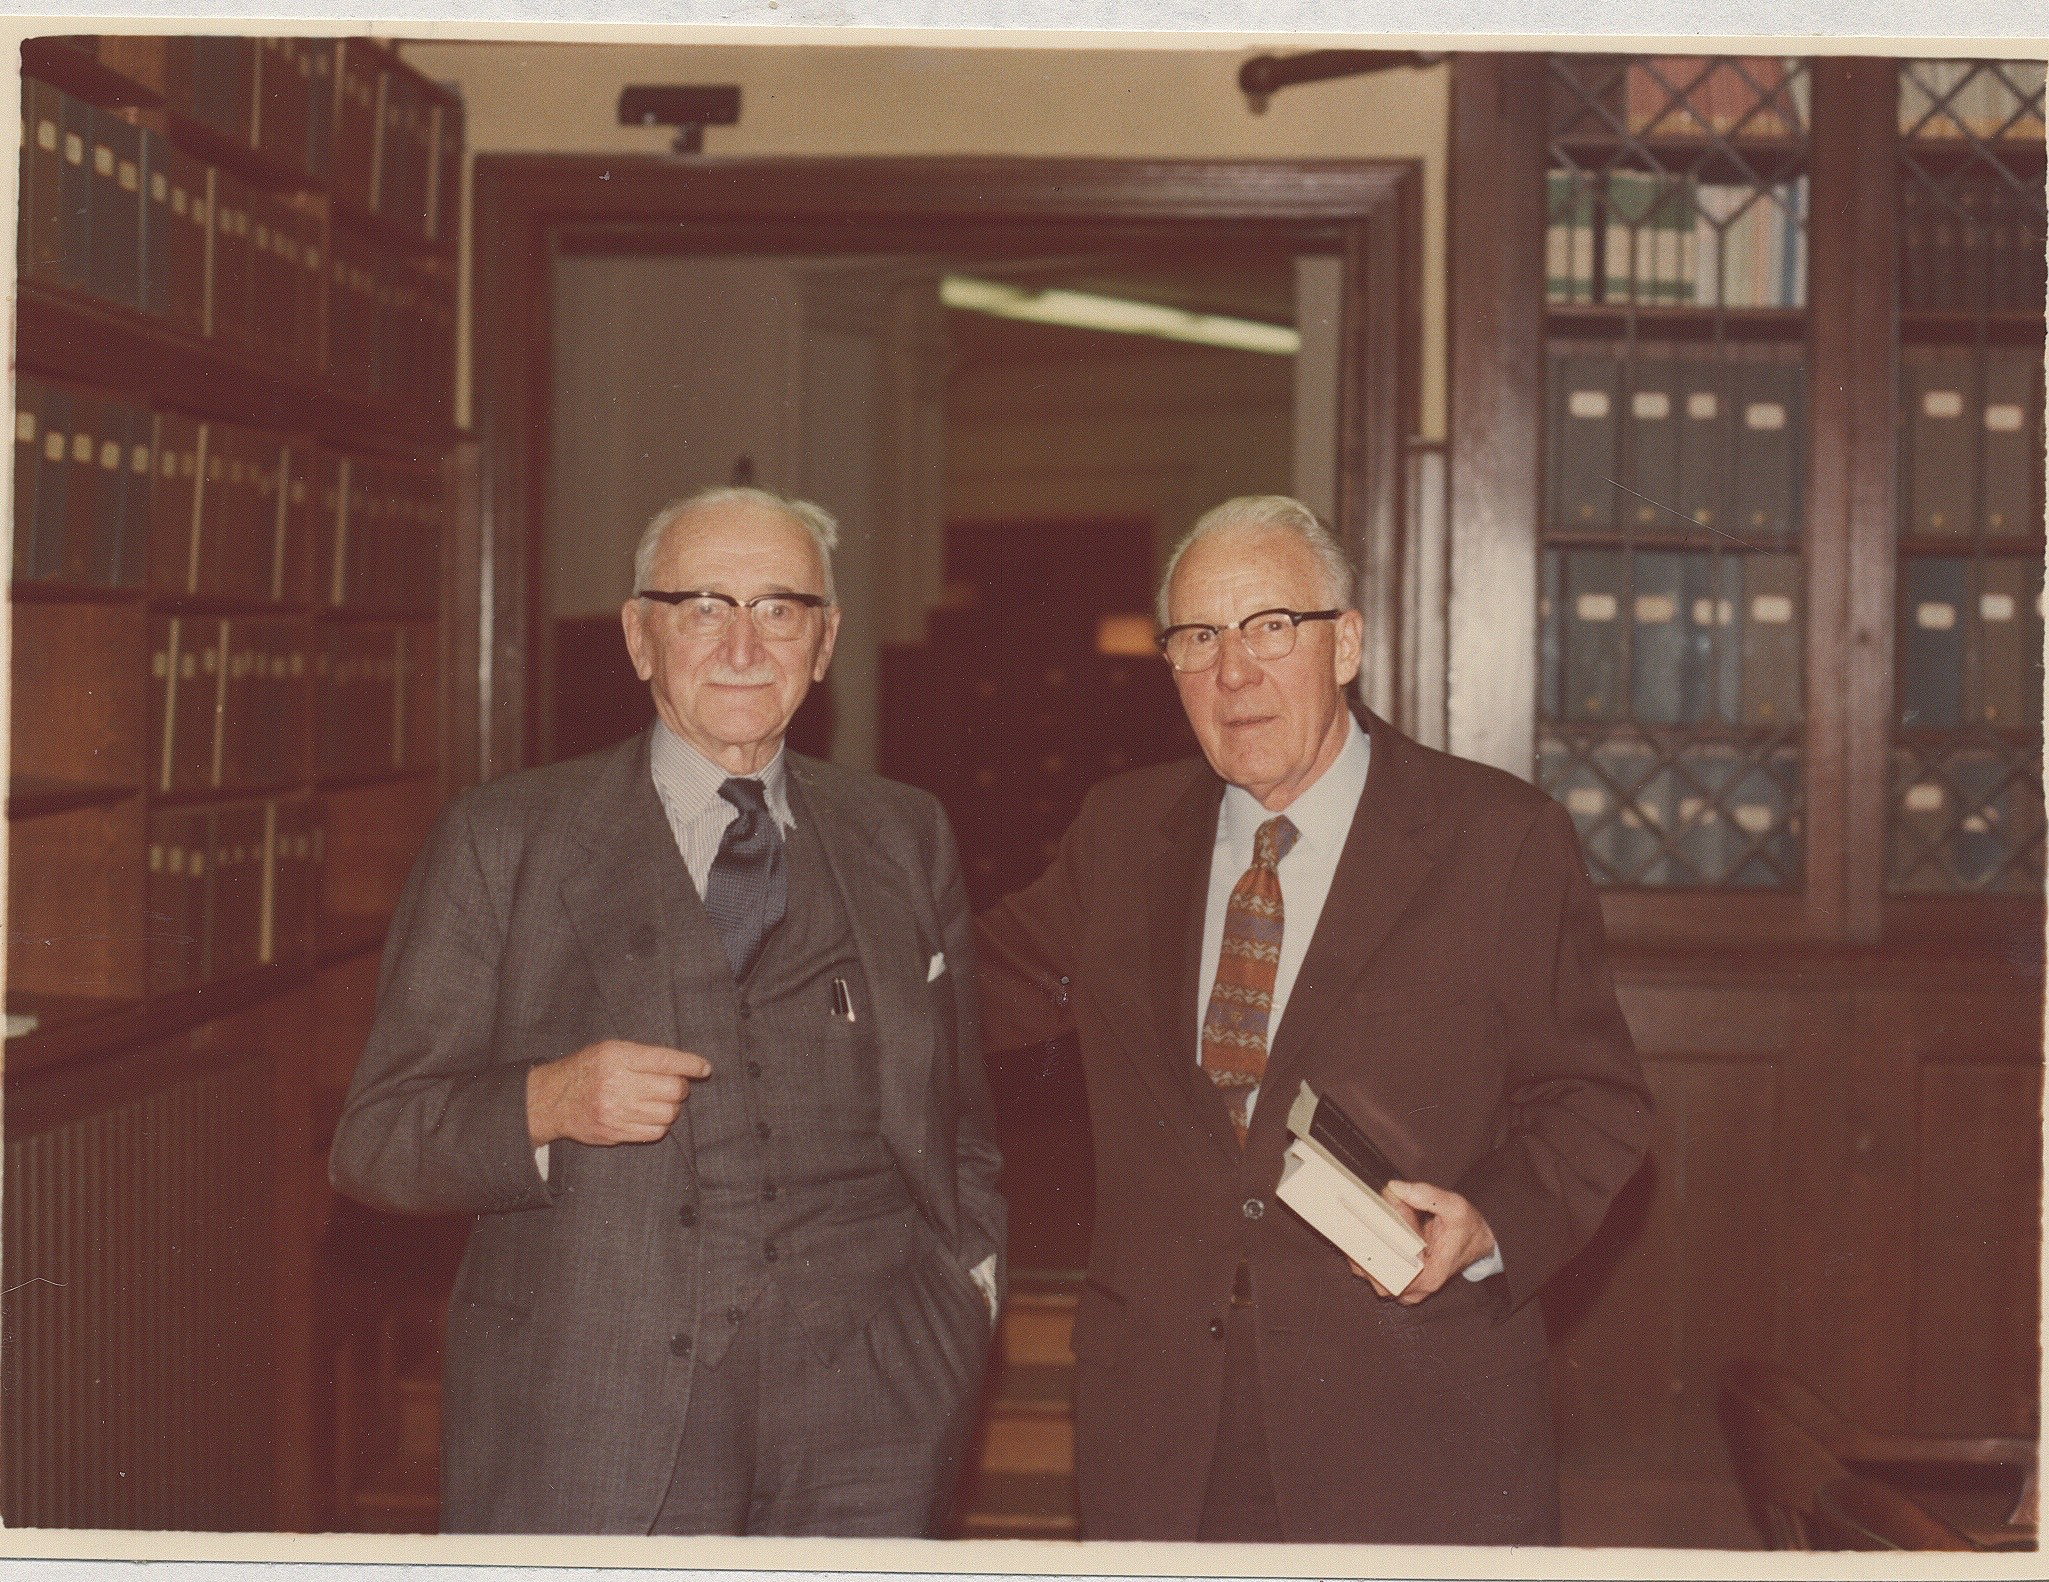 F A Hayek (left) with Leonard Read (right) in FEE's  Irvington Library